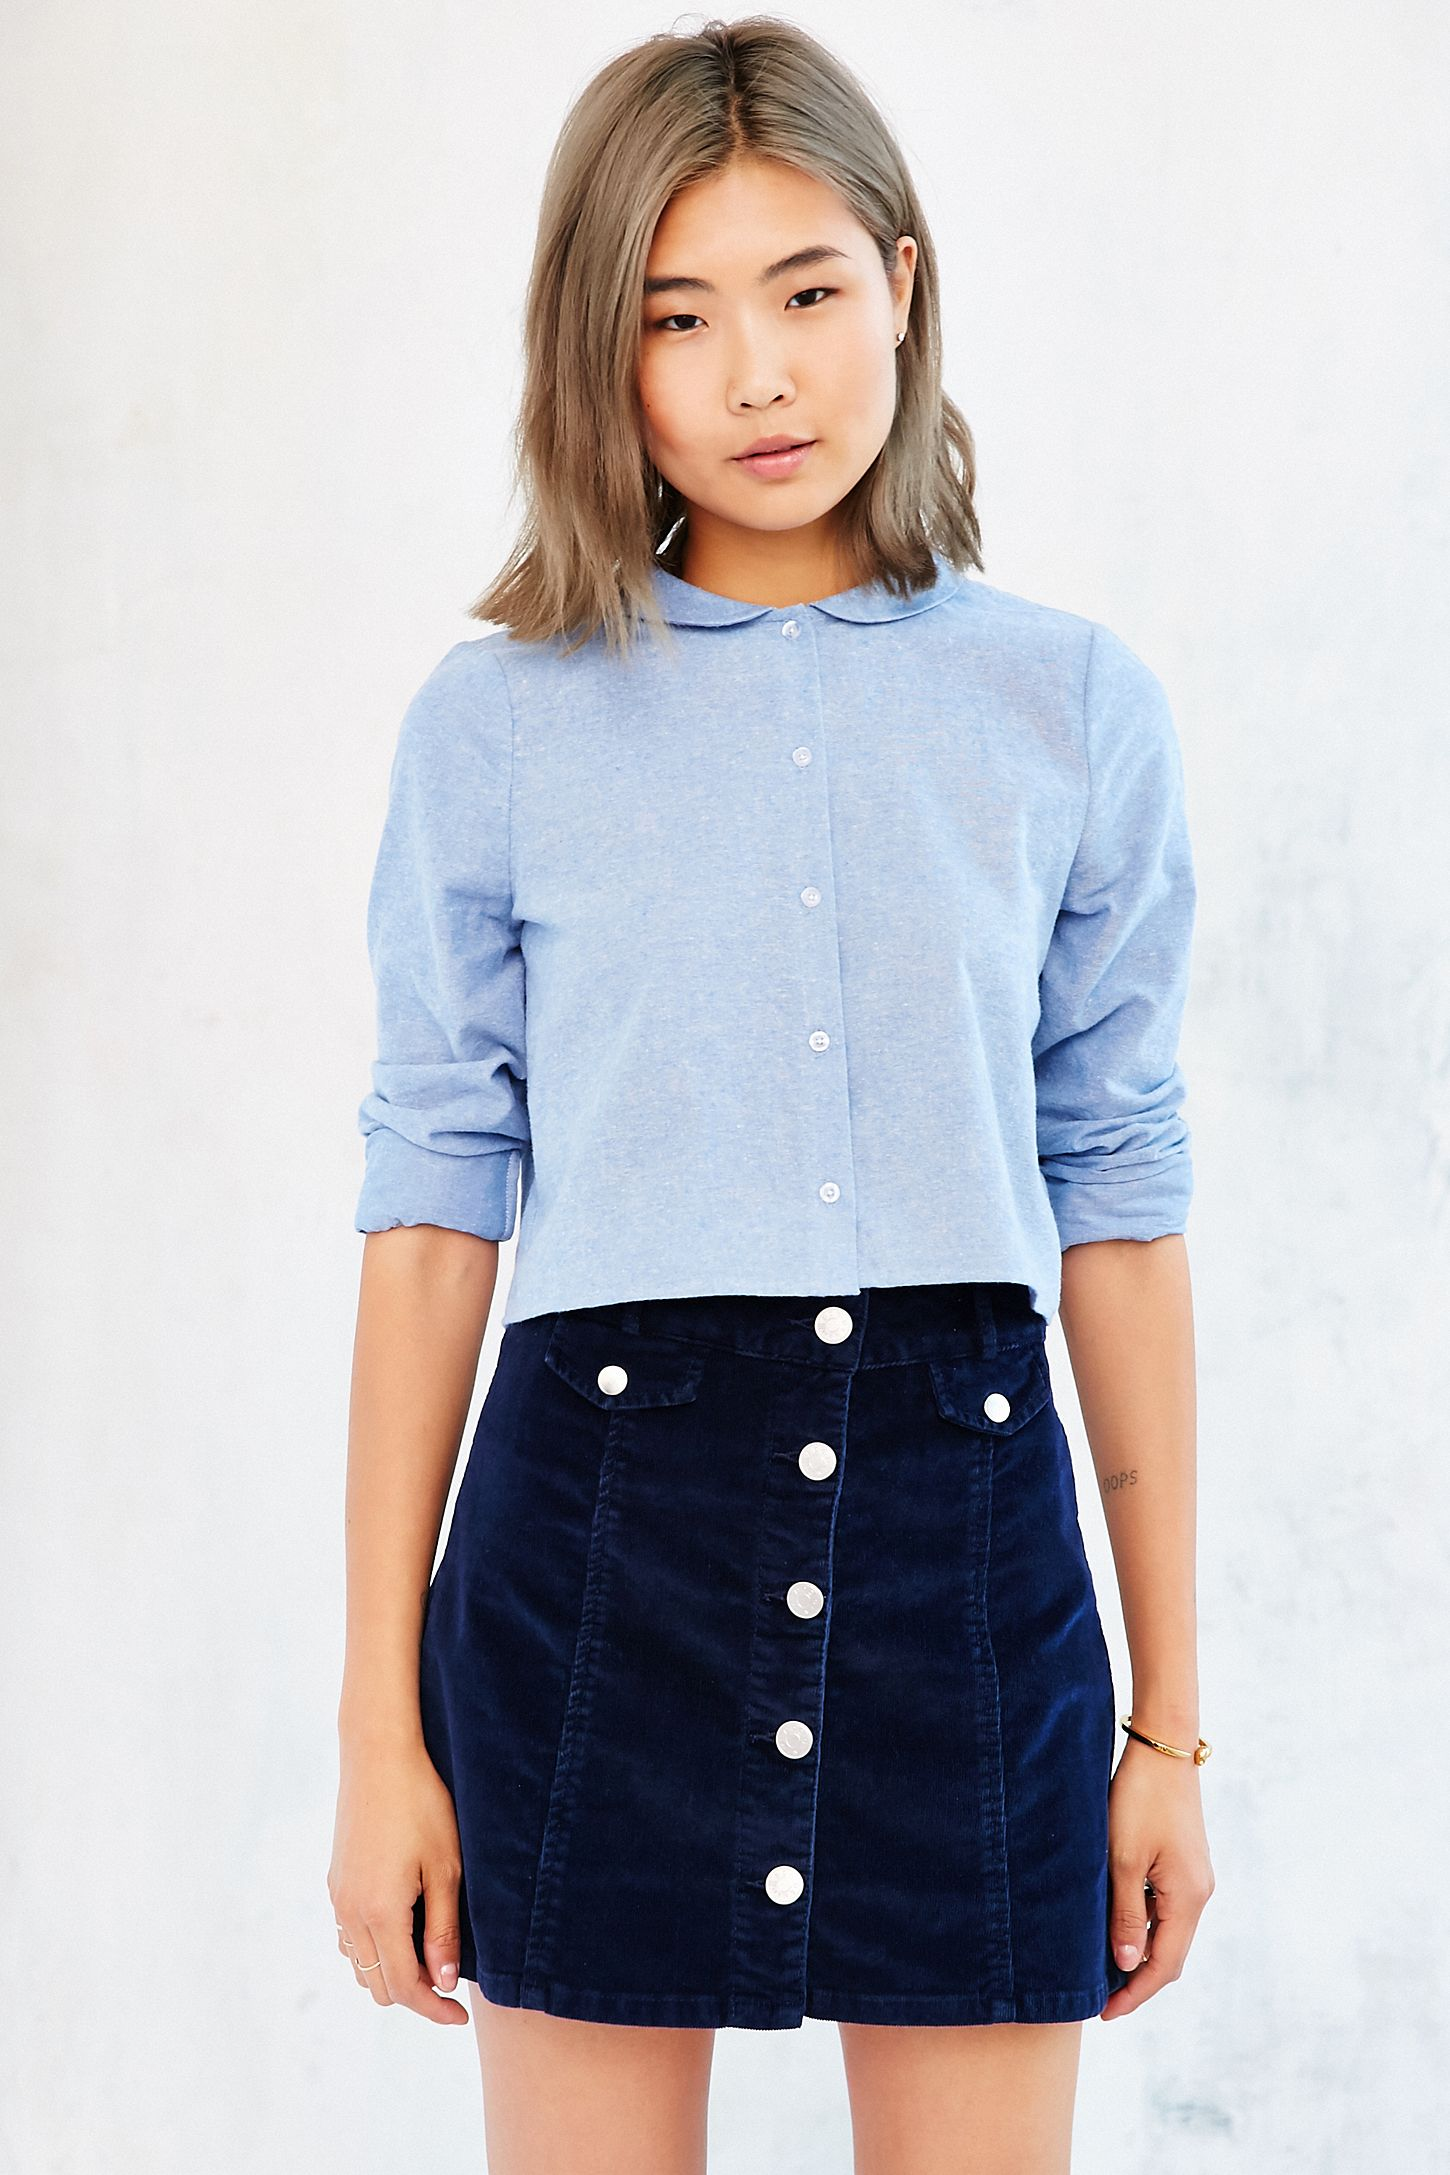 Cooperative Peter Pan Collar Button Down Shirt Urban Outfitters